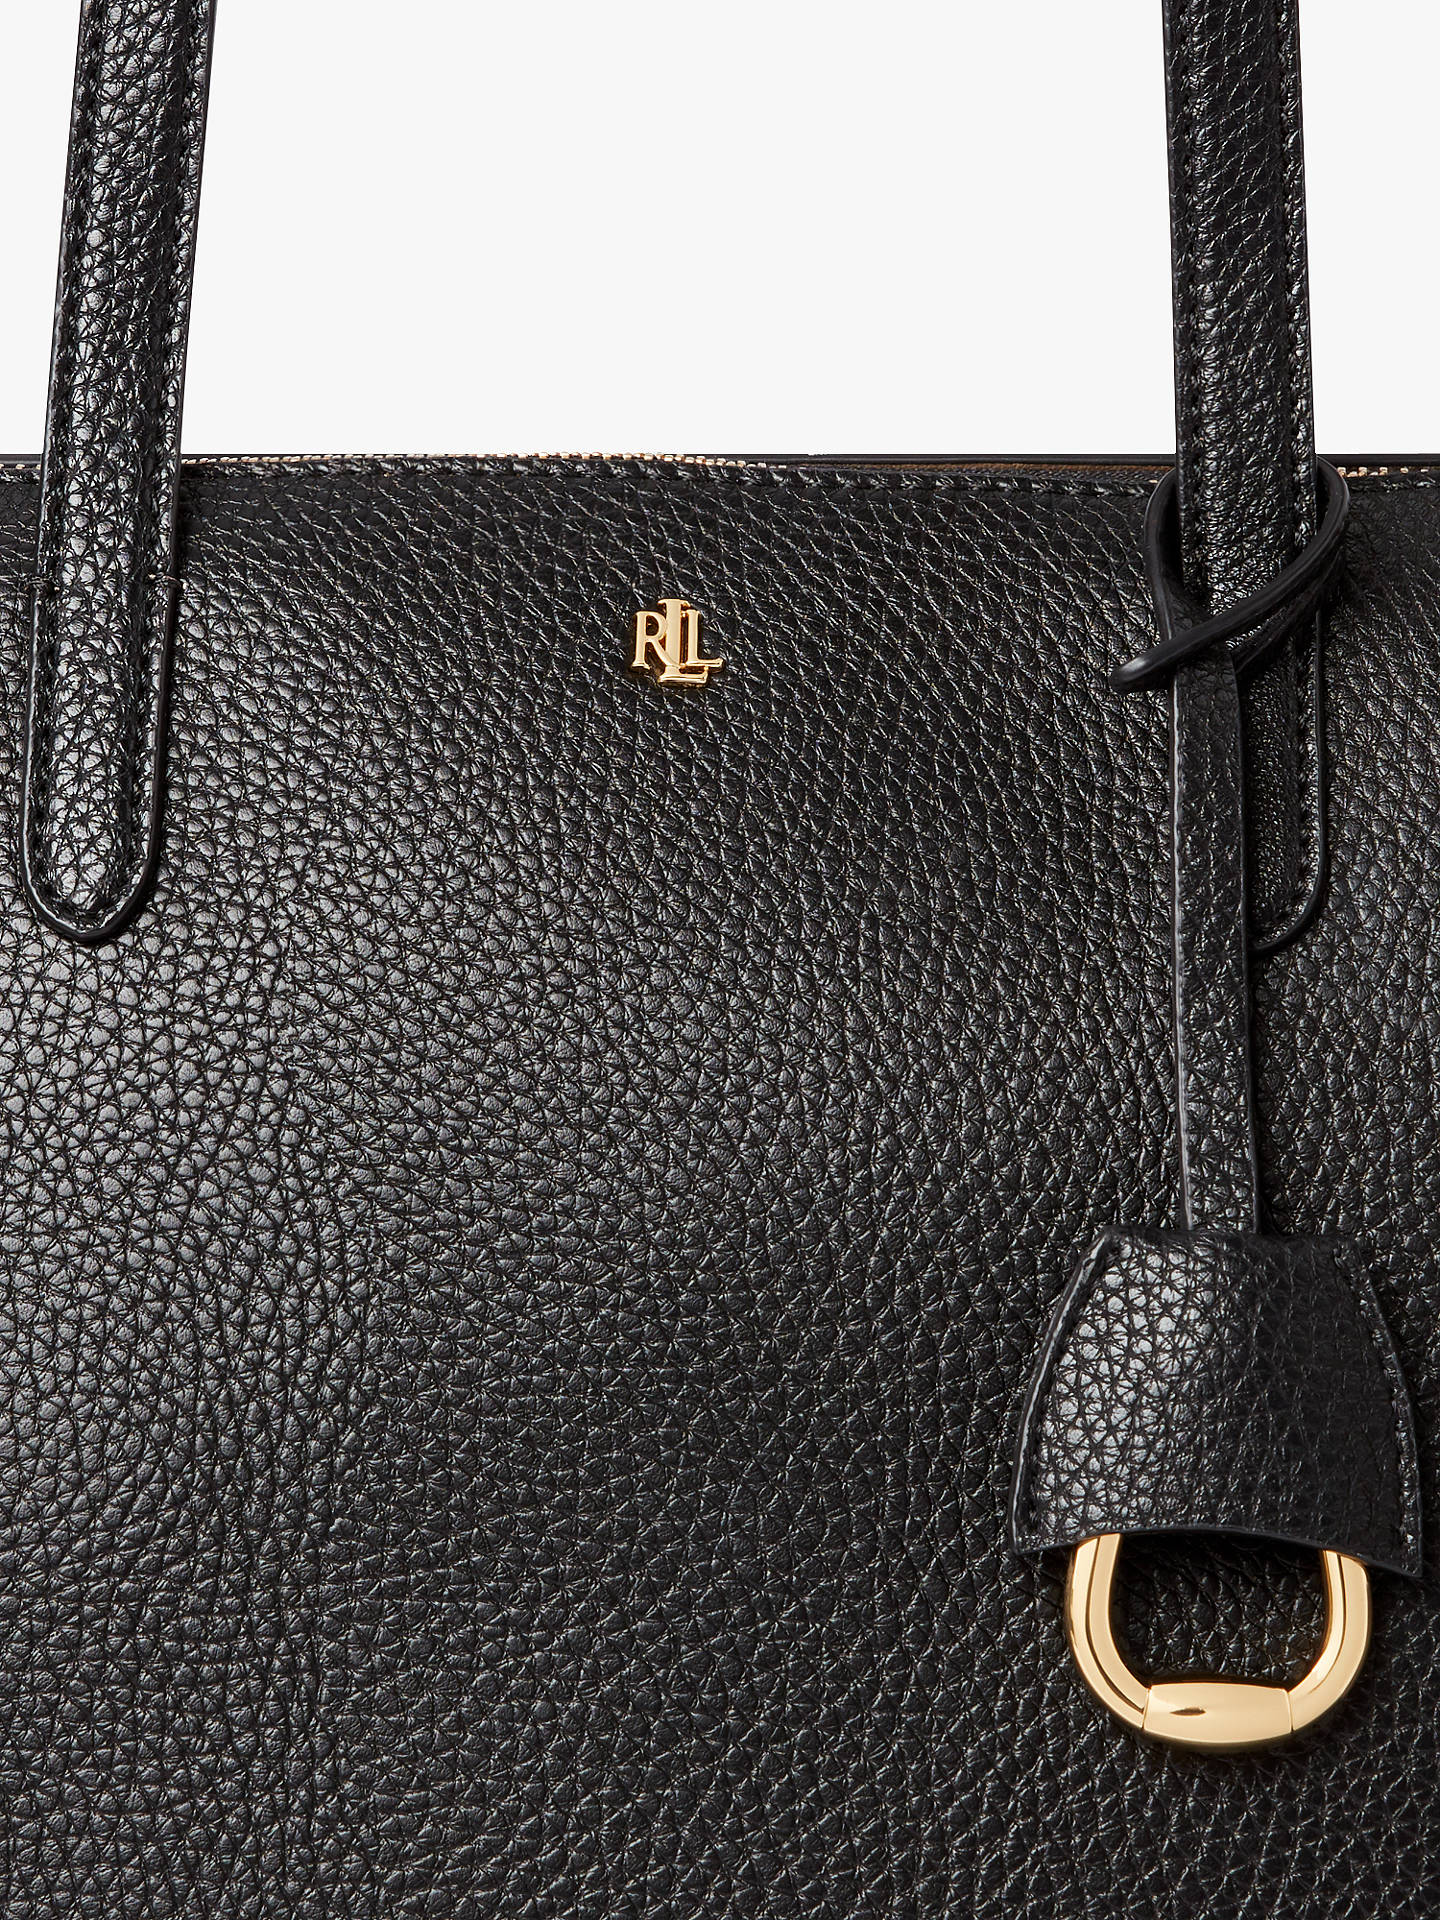 lauren ralph lauren bag review